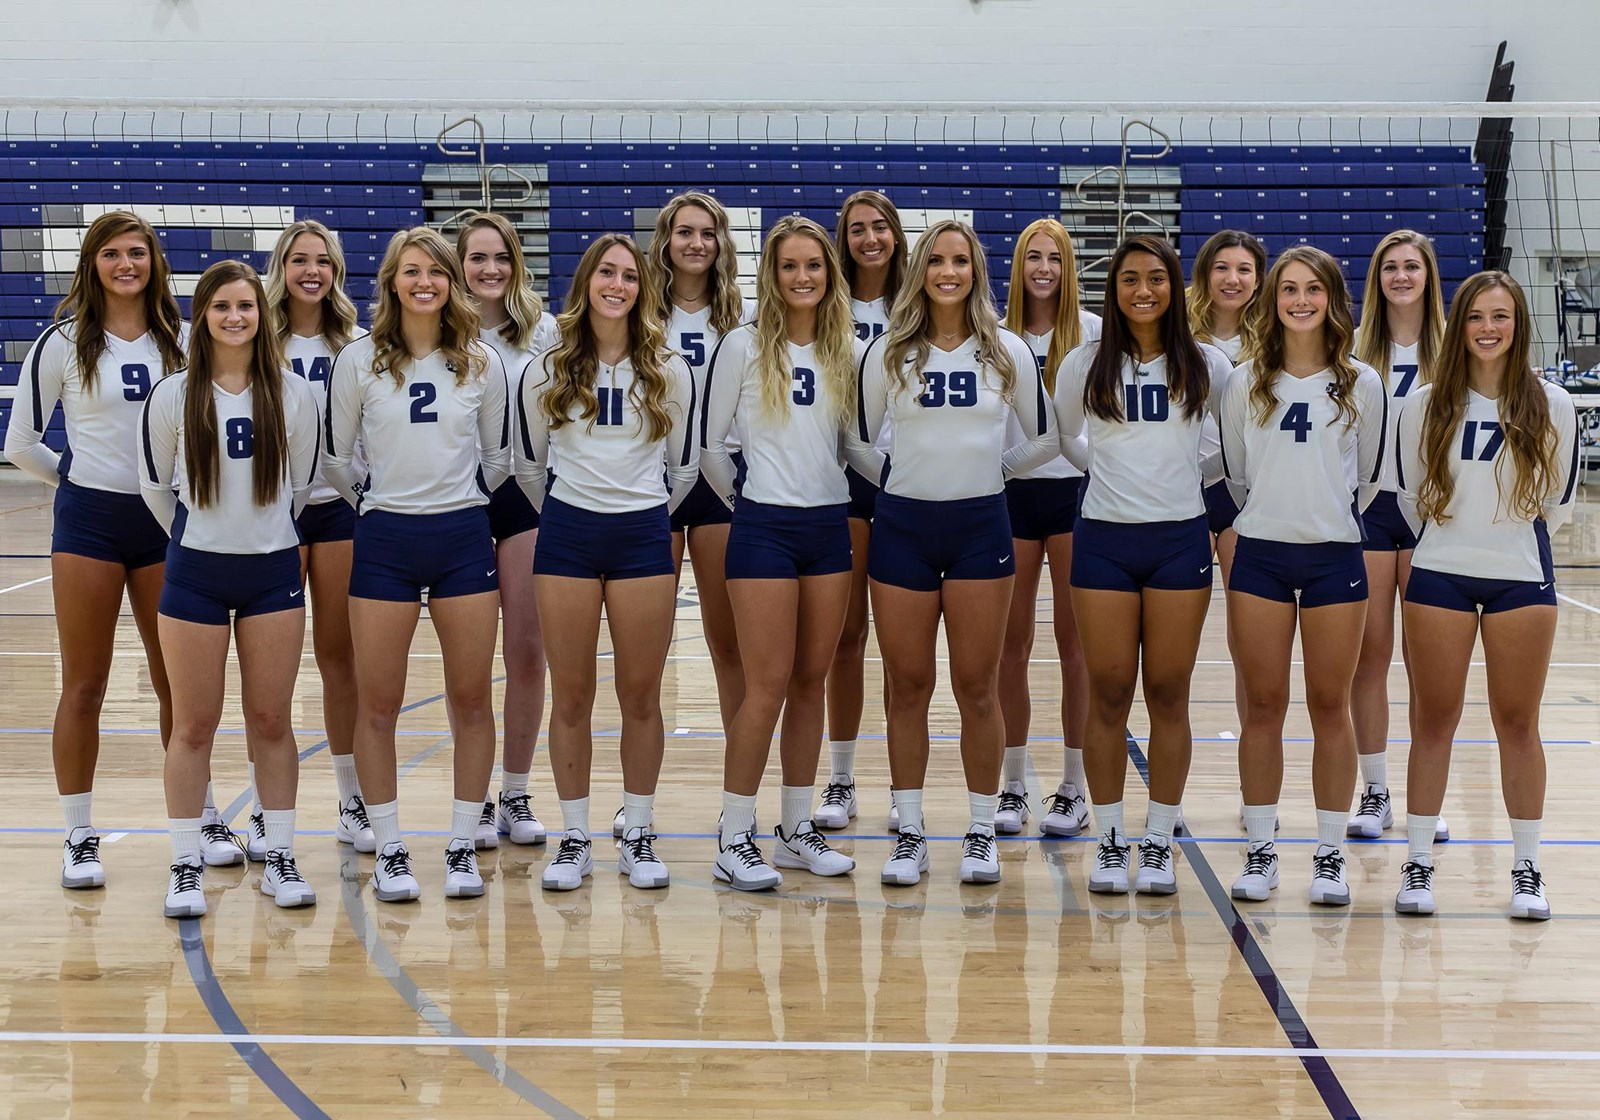 2019 Women S Volleyball Roster Utah State University Athletics